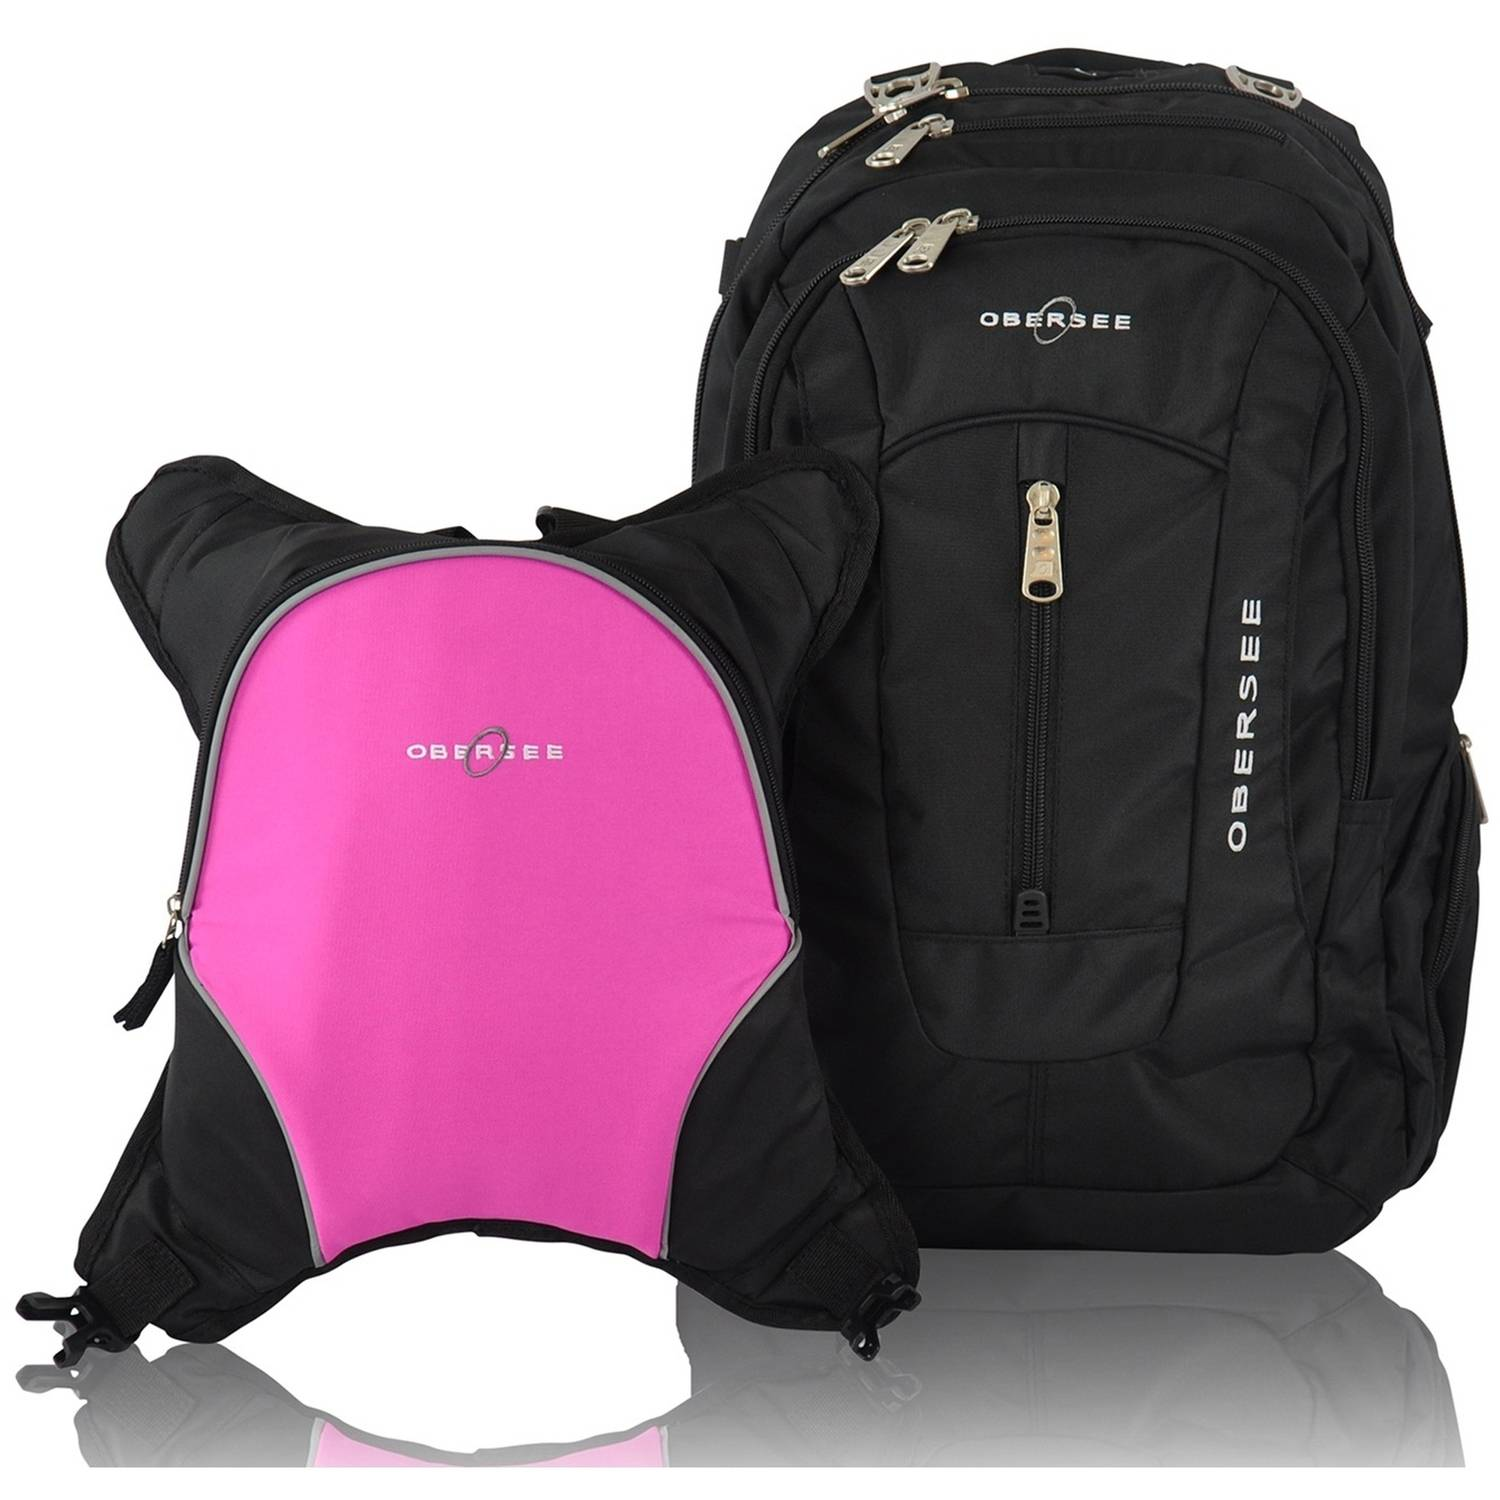 Obersee Bern Diaper Bag Backpack and Cooler, Black Pink by Obersee